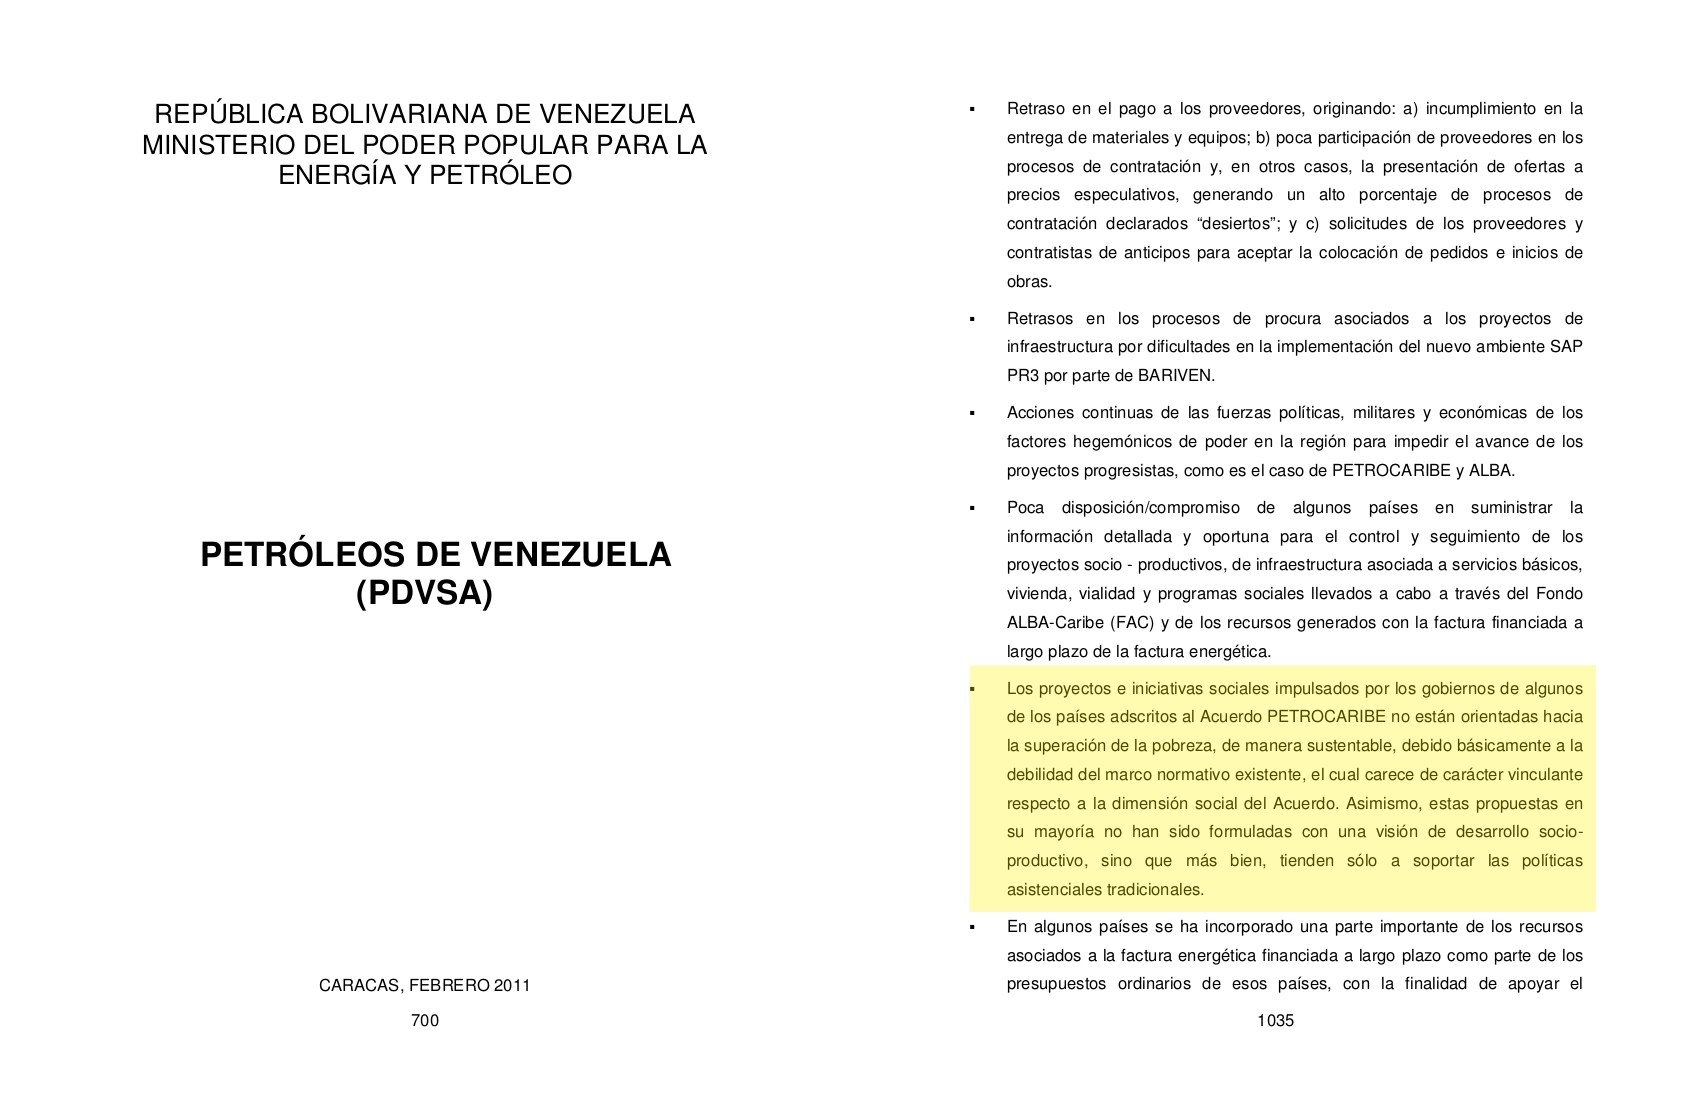 Table D Inversion Occasion The Assistentialism That Bolted Allies In Petrofraude Connectas